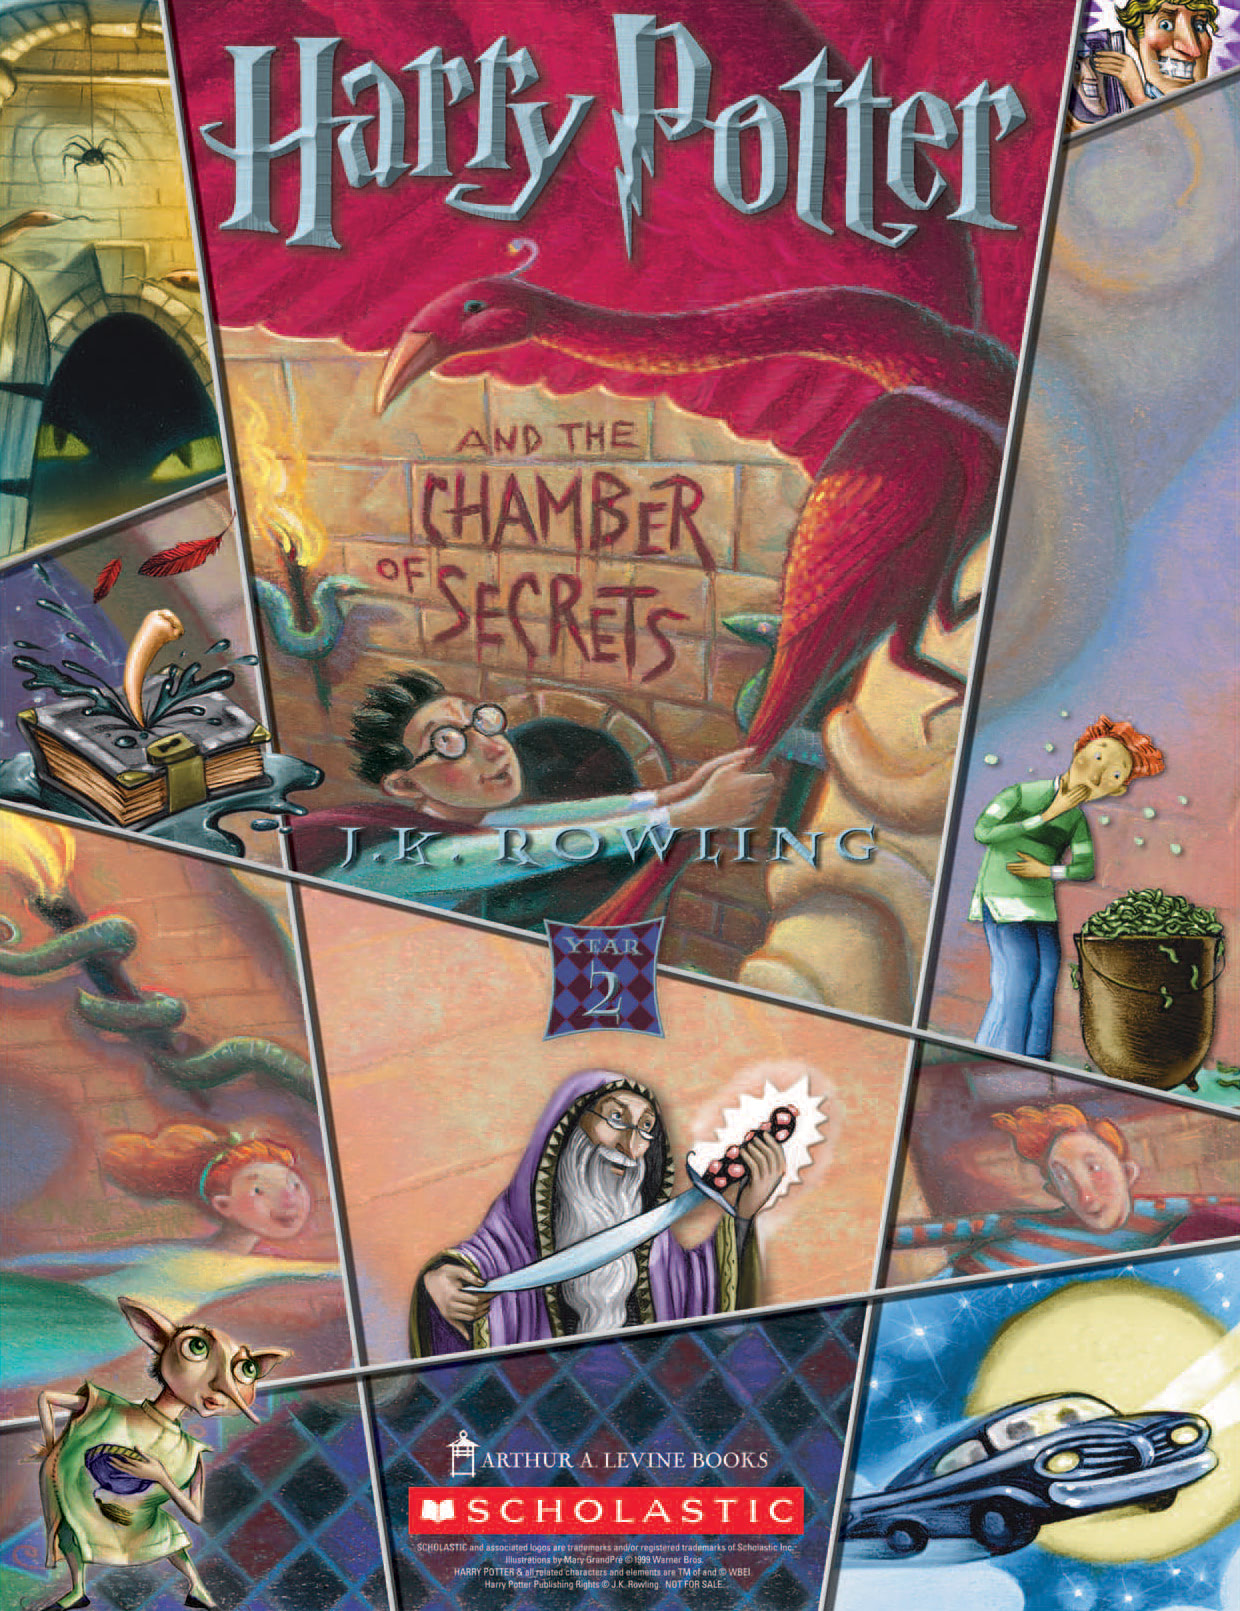 'Chamber of Secrets' (Year 2) Scholastic promotional poster